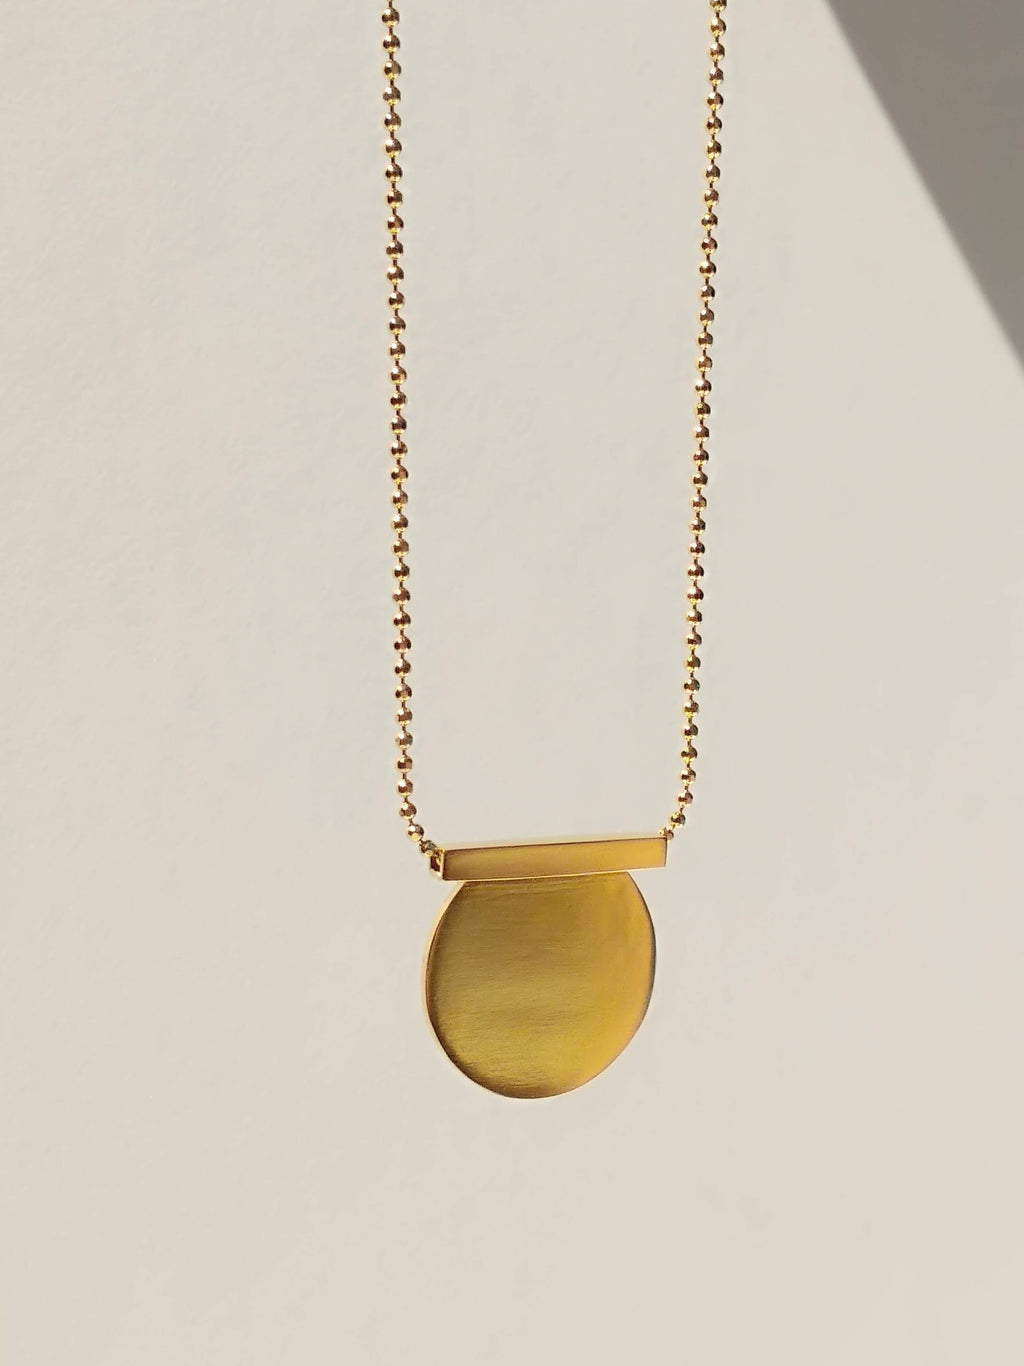 24K Gold Plated Cut Circle & Line Necklace